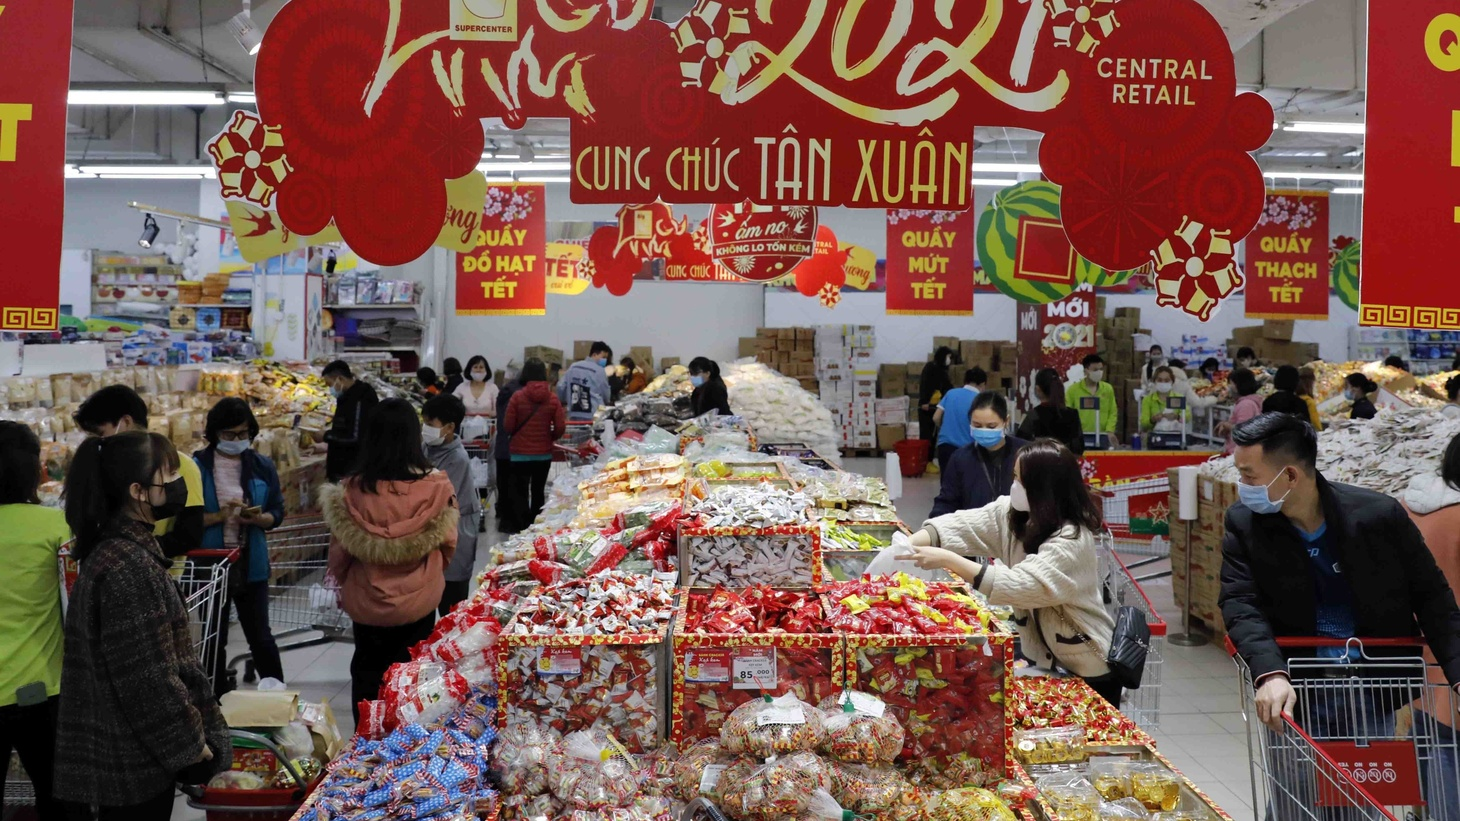 Vietnamese people stock up on food in a supermarket in Hanoi, Vietnam, February 5, 2021. Businesses in the city have made great efforts to increase production to meet the growing demand during Tet and have strictly followed preventive measures for COVID-19.